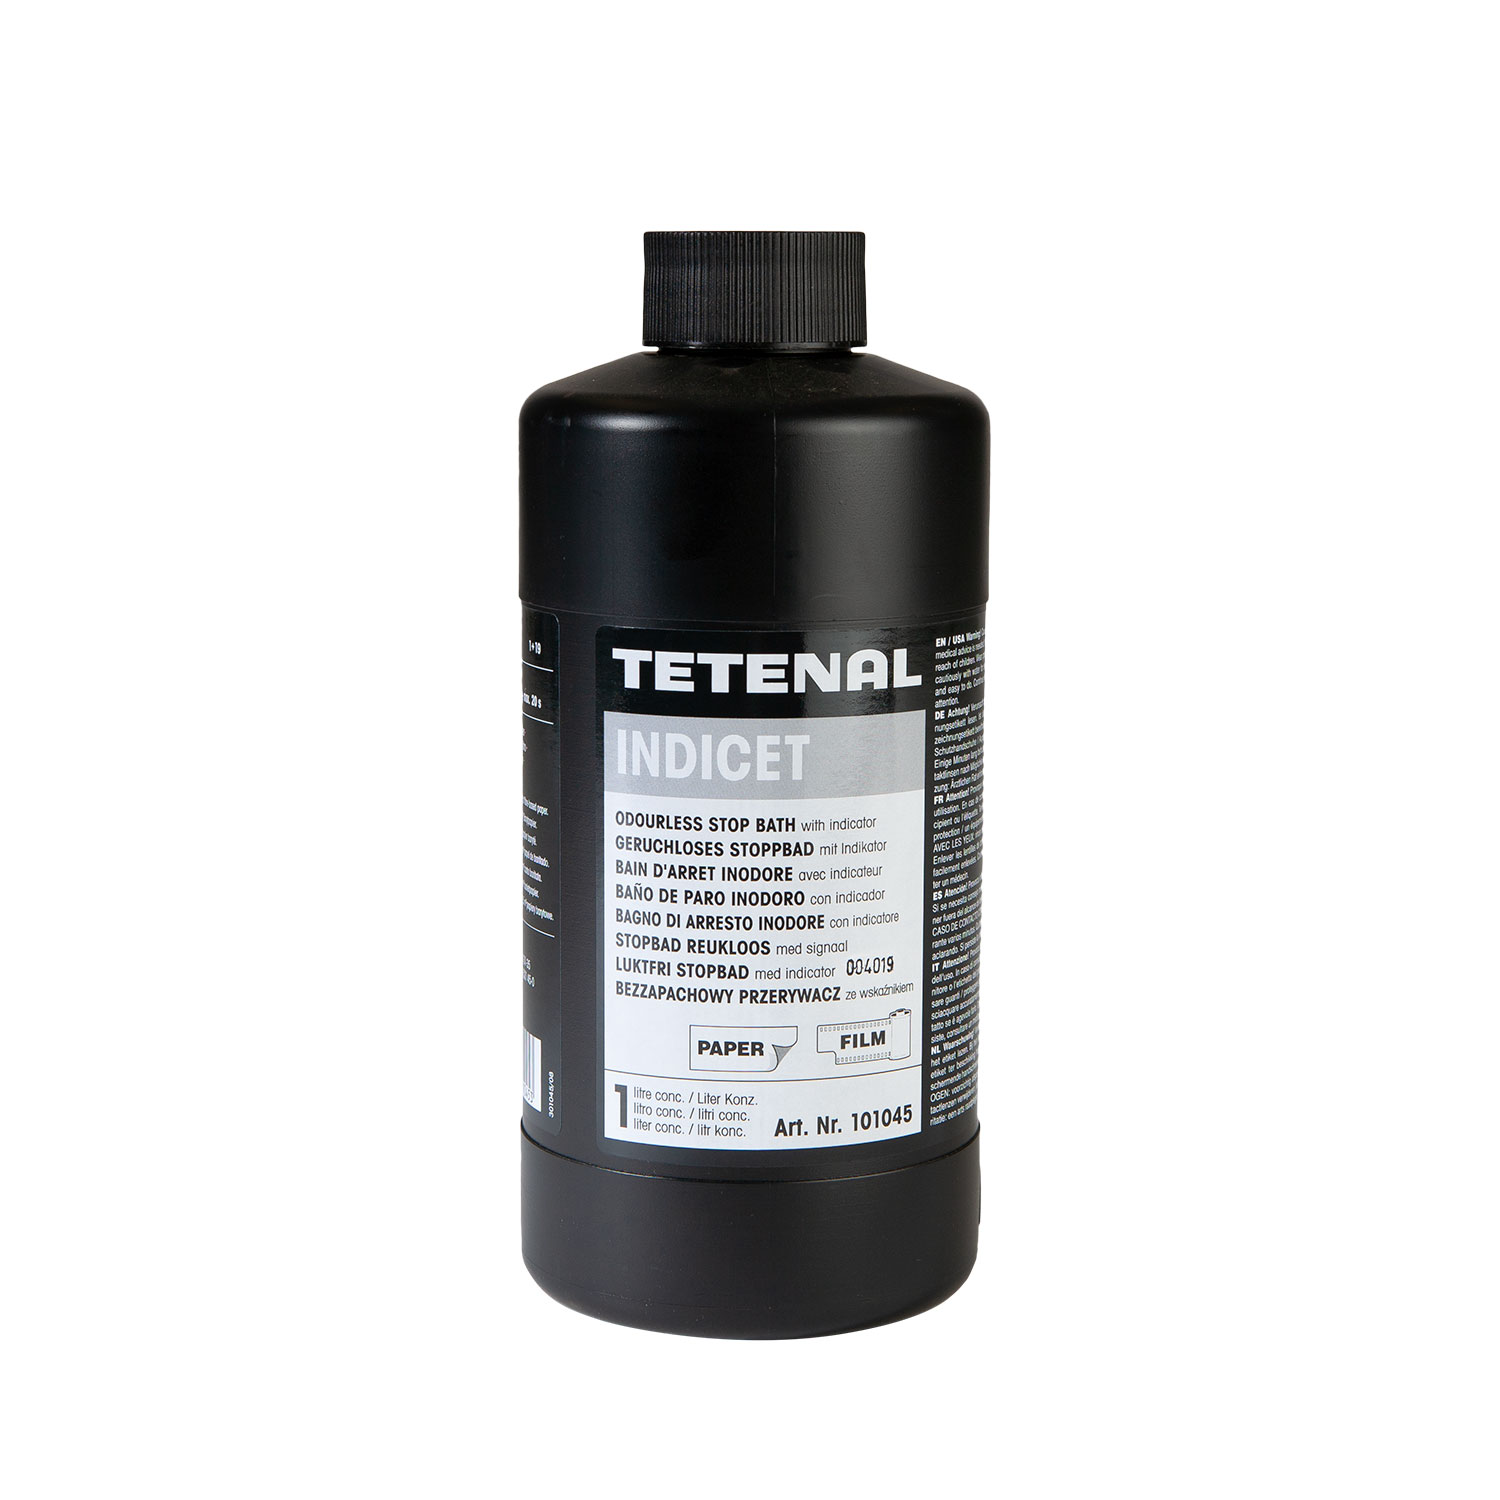 TETENAL Indicet stop bath with indicator